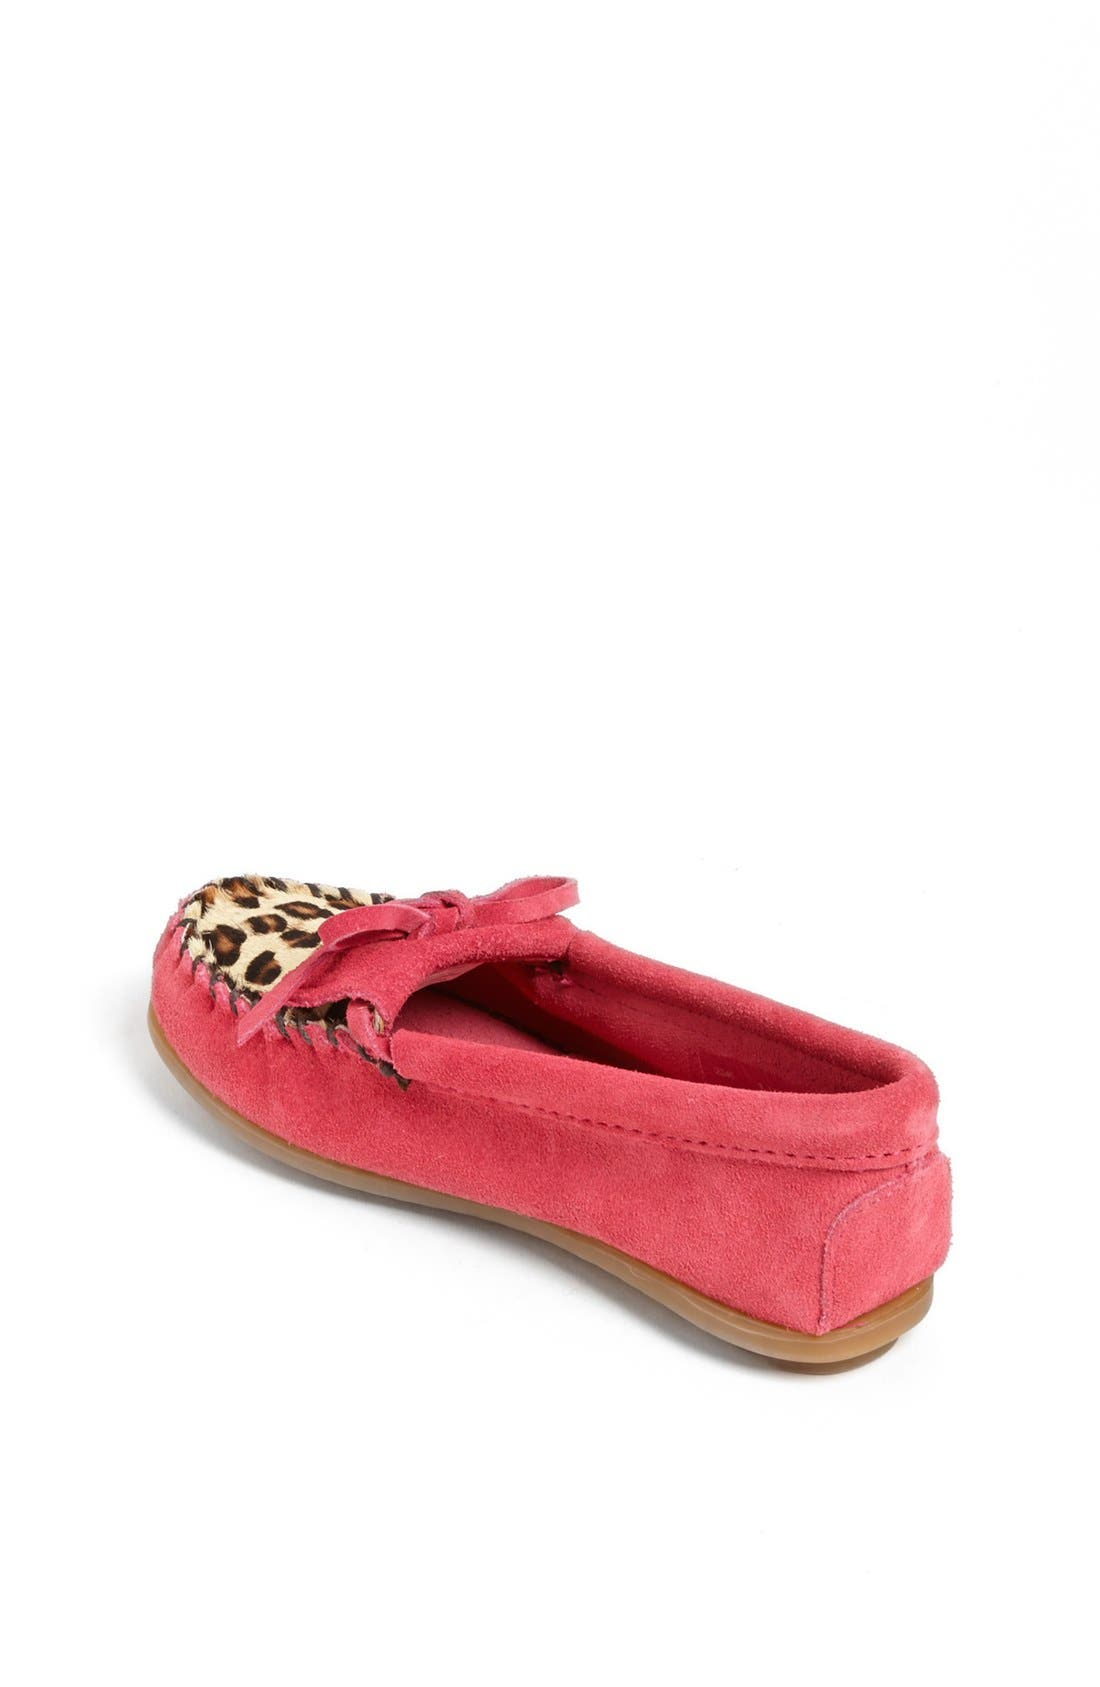 Alternate Image 2  - Minnetonka 'Kilty - Leopard' Moccasin (Walker, Toddler, Little Kid & Big Kid)